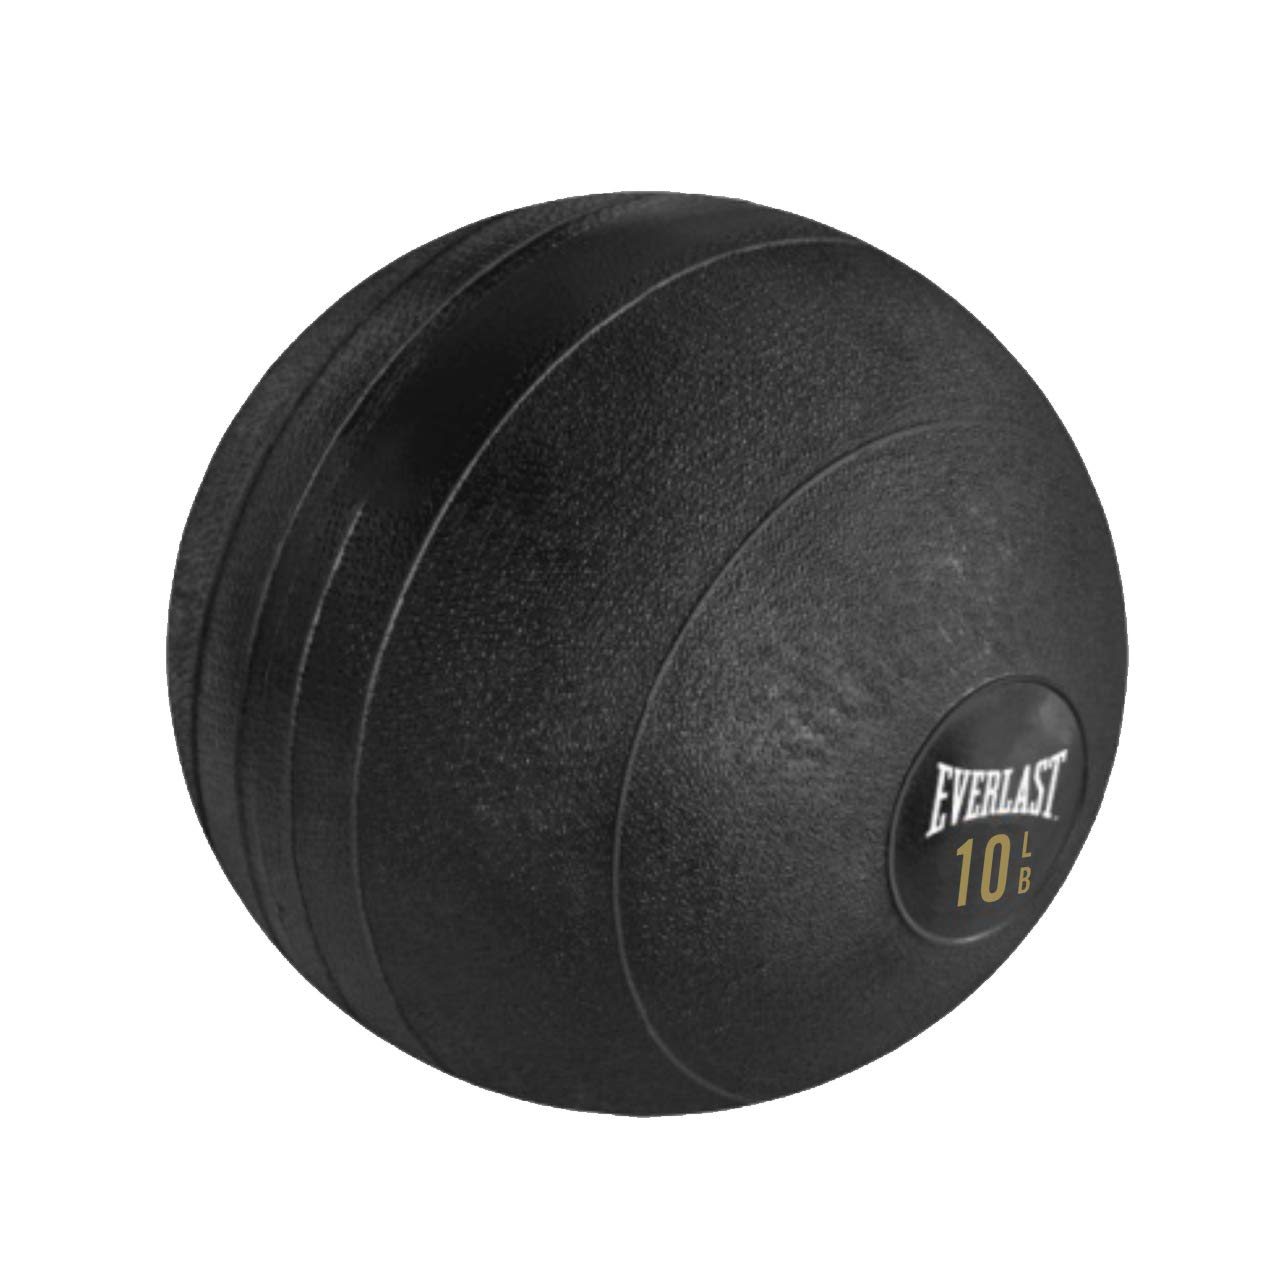 Everlast 10lb Flex Slam Ball Flex Slam Ball